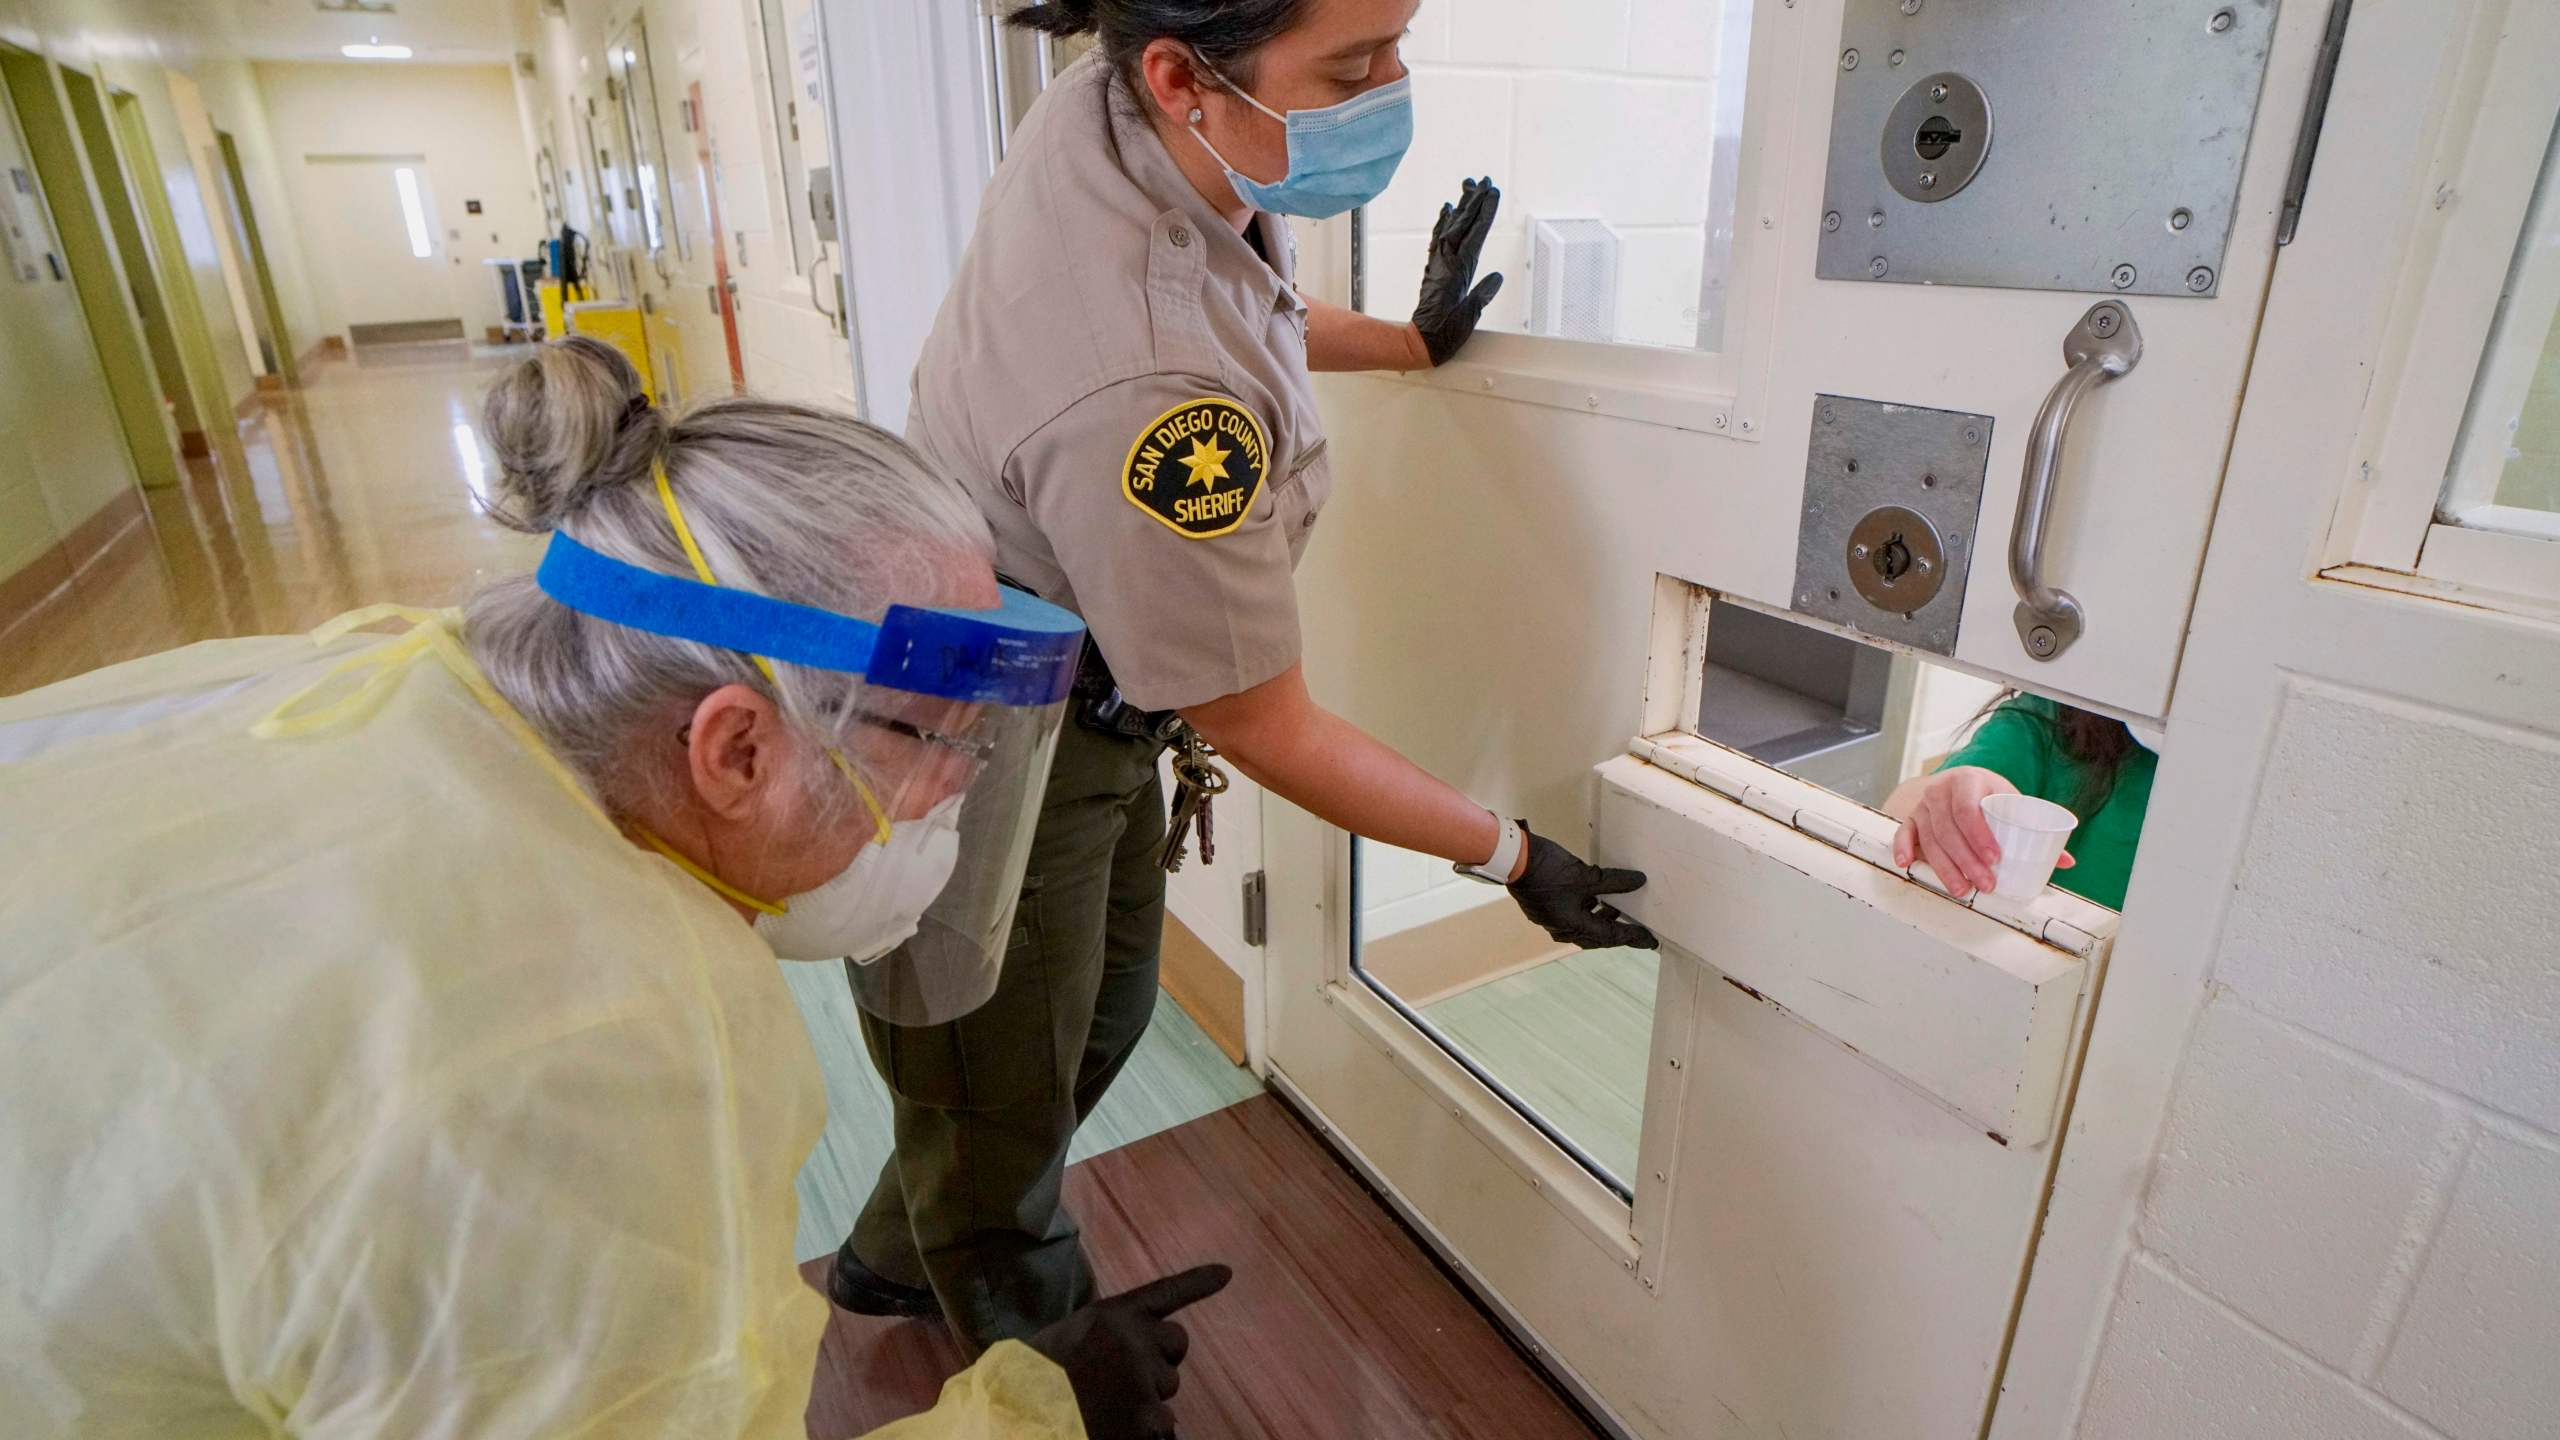 A Sheriff's deputy and an on-site nurse give medications to an inmate at Las Colinas Women's Detention Facility in Santee, California, on April 22, 2020. (Sandy Huffaker/ AFP via Getty Images)